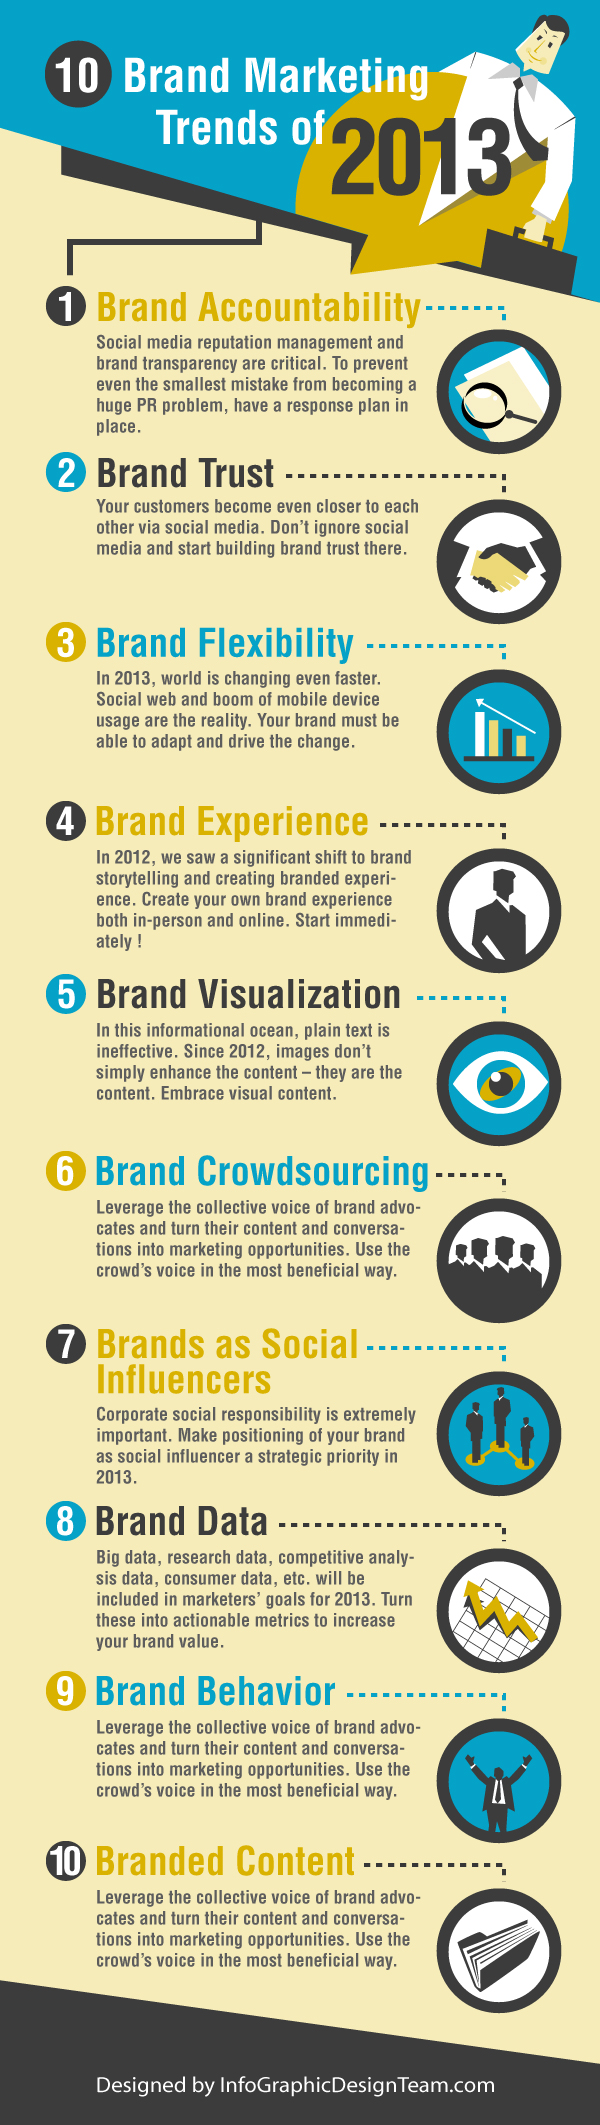 10 latest brand marketing trends in the year 2013